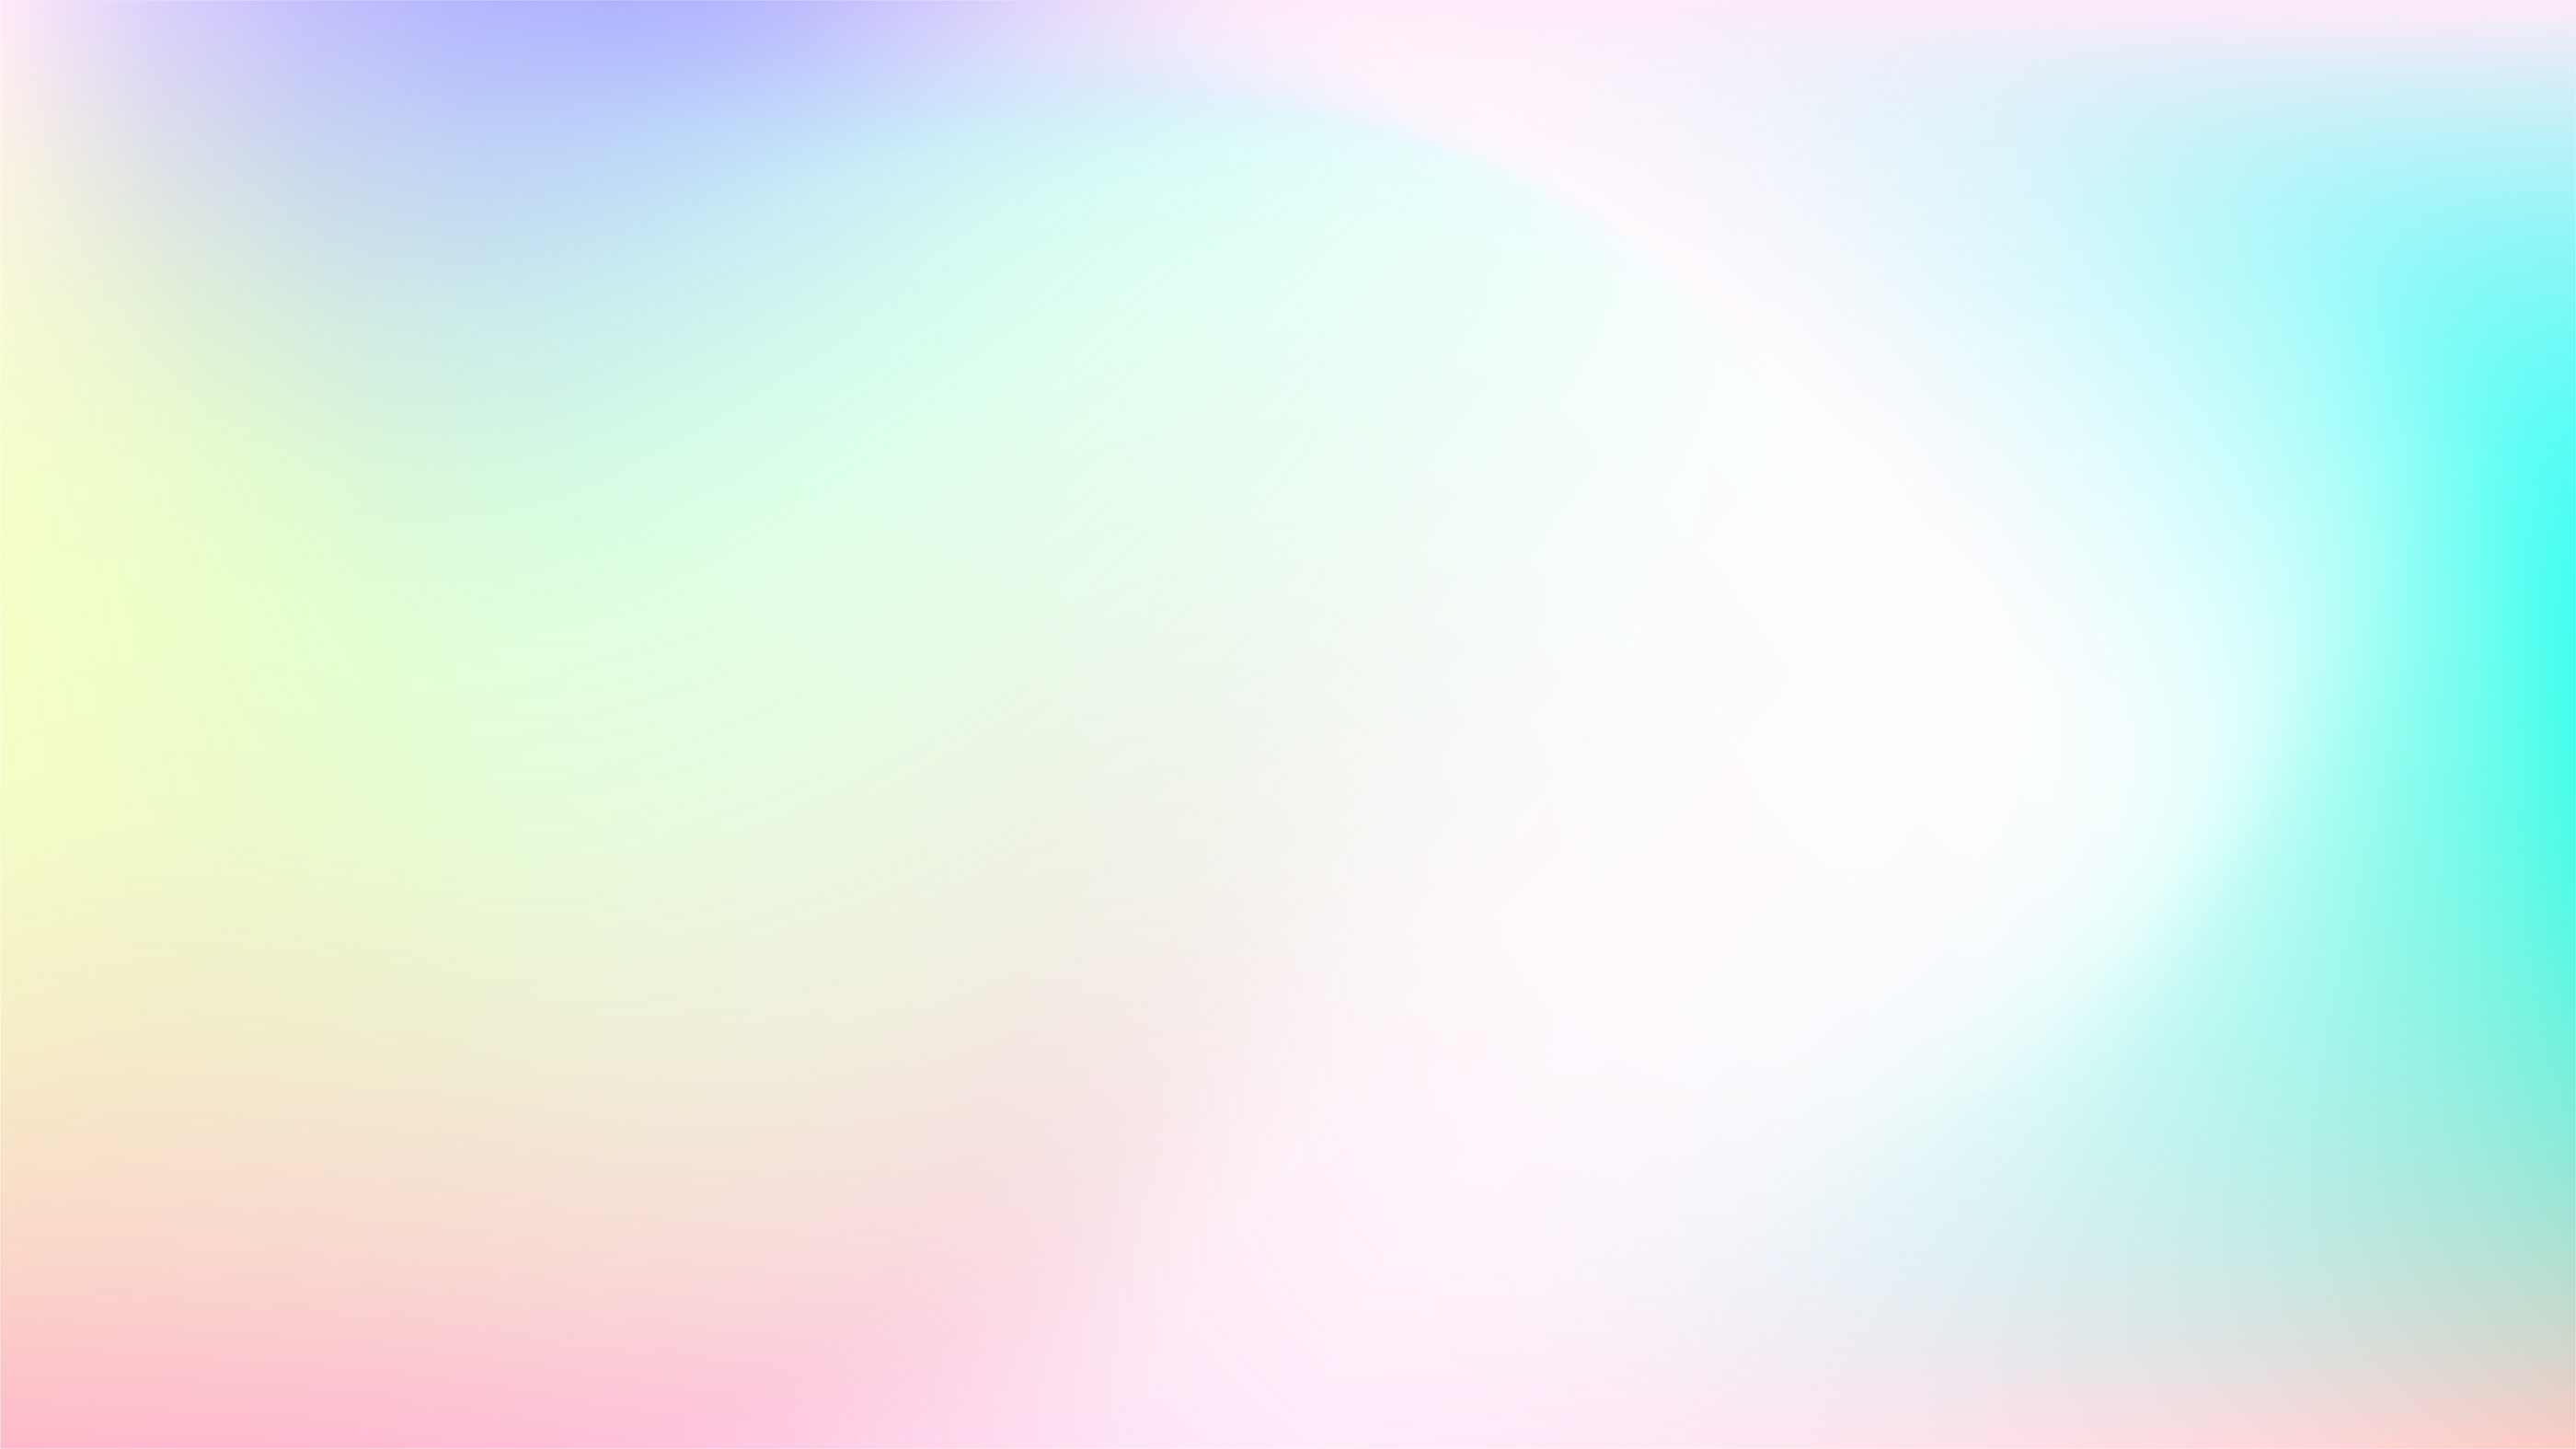 Free Holographic, Multicolor, Unicorn Vector Gradients - 19